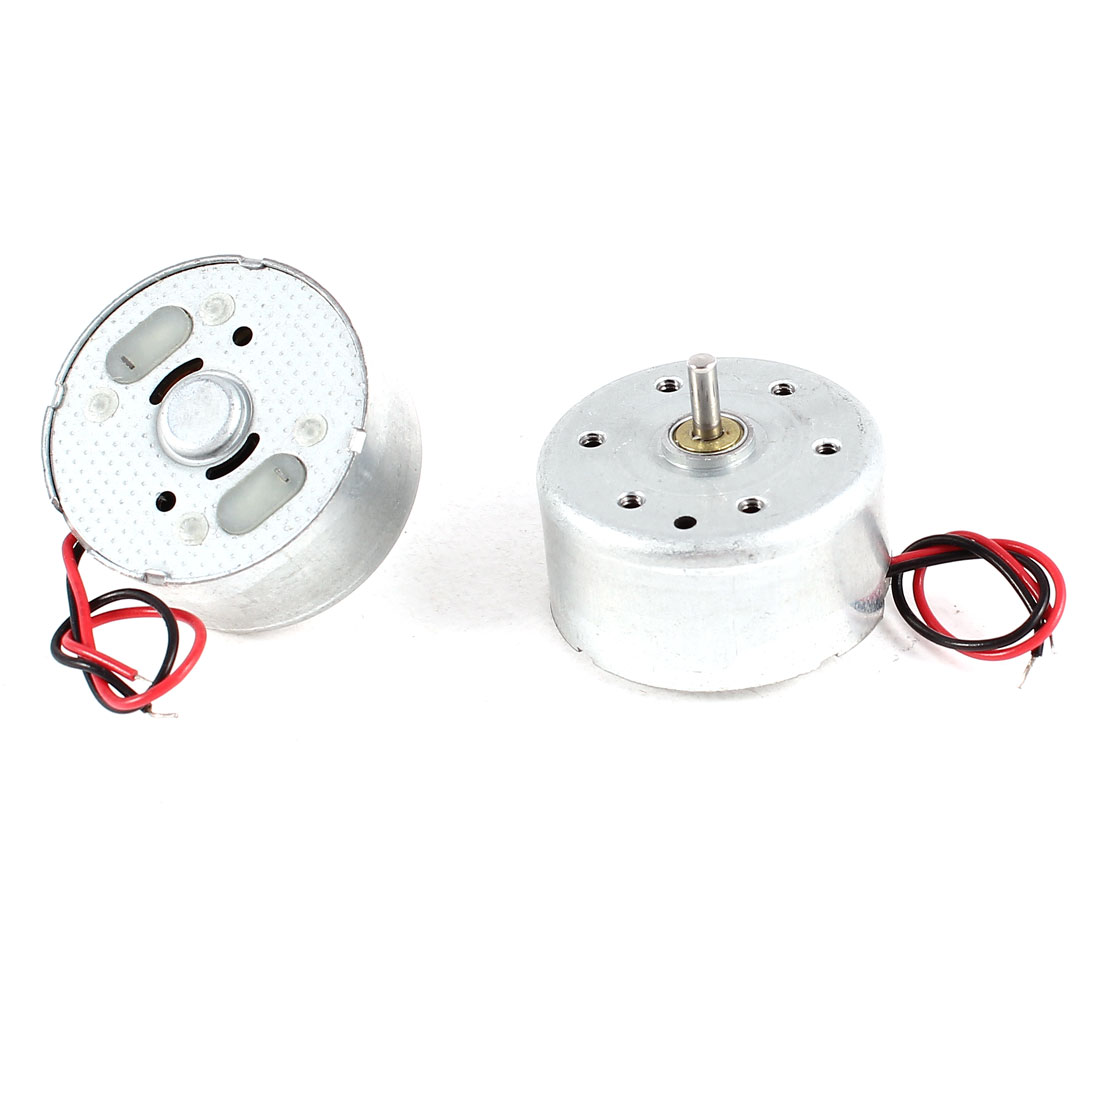 2 Pcs DC 1.5-3V 4500RPM Electric Mini Motor 12x25mm for CD DVD Player